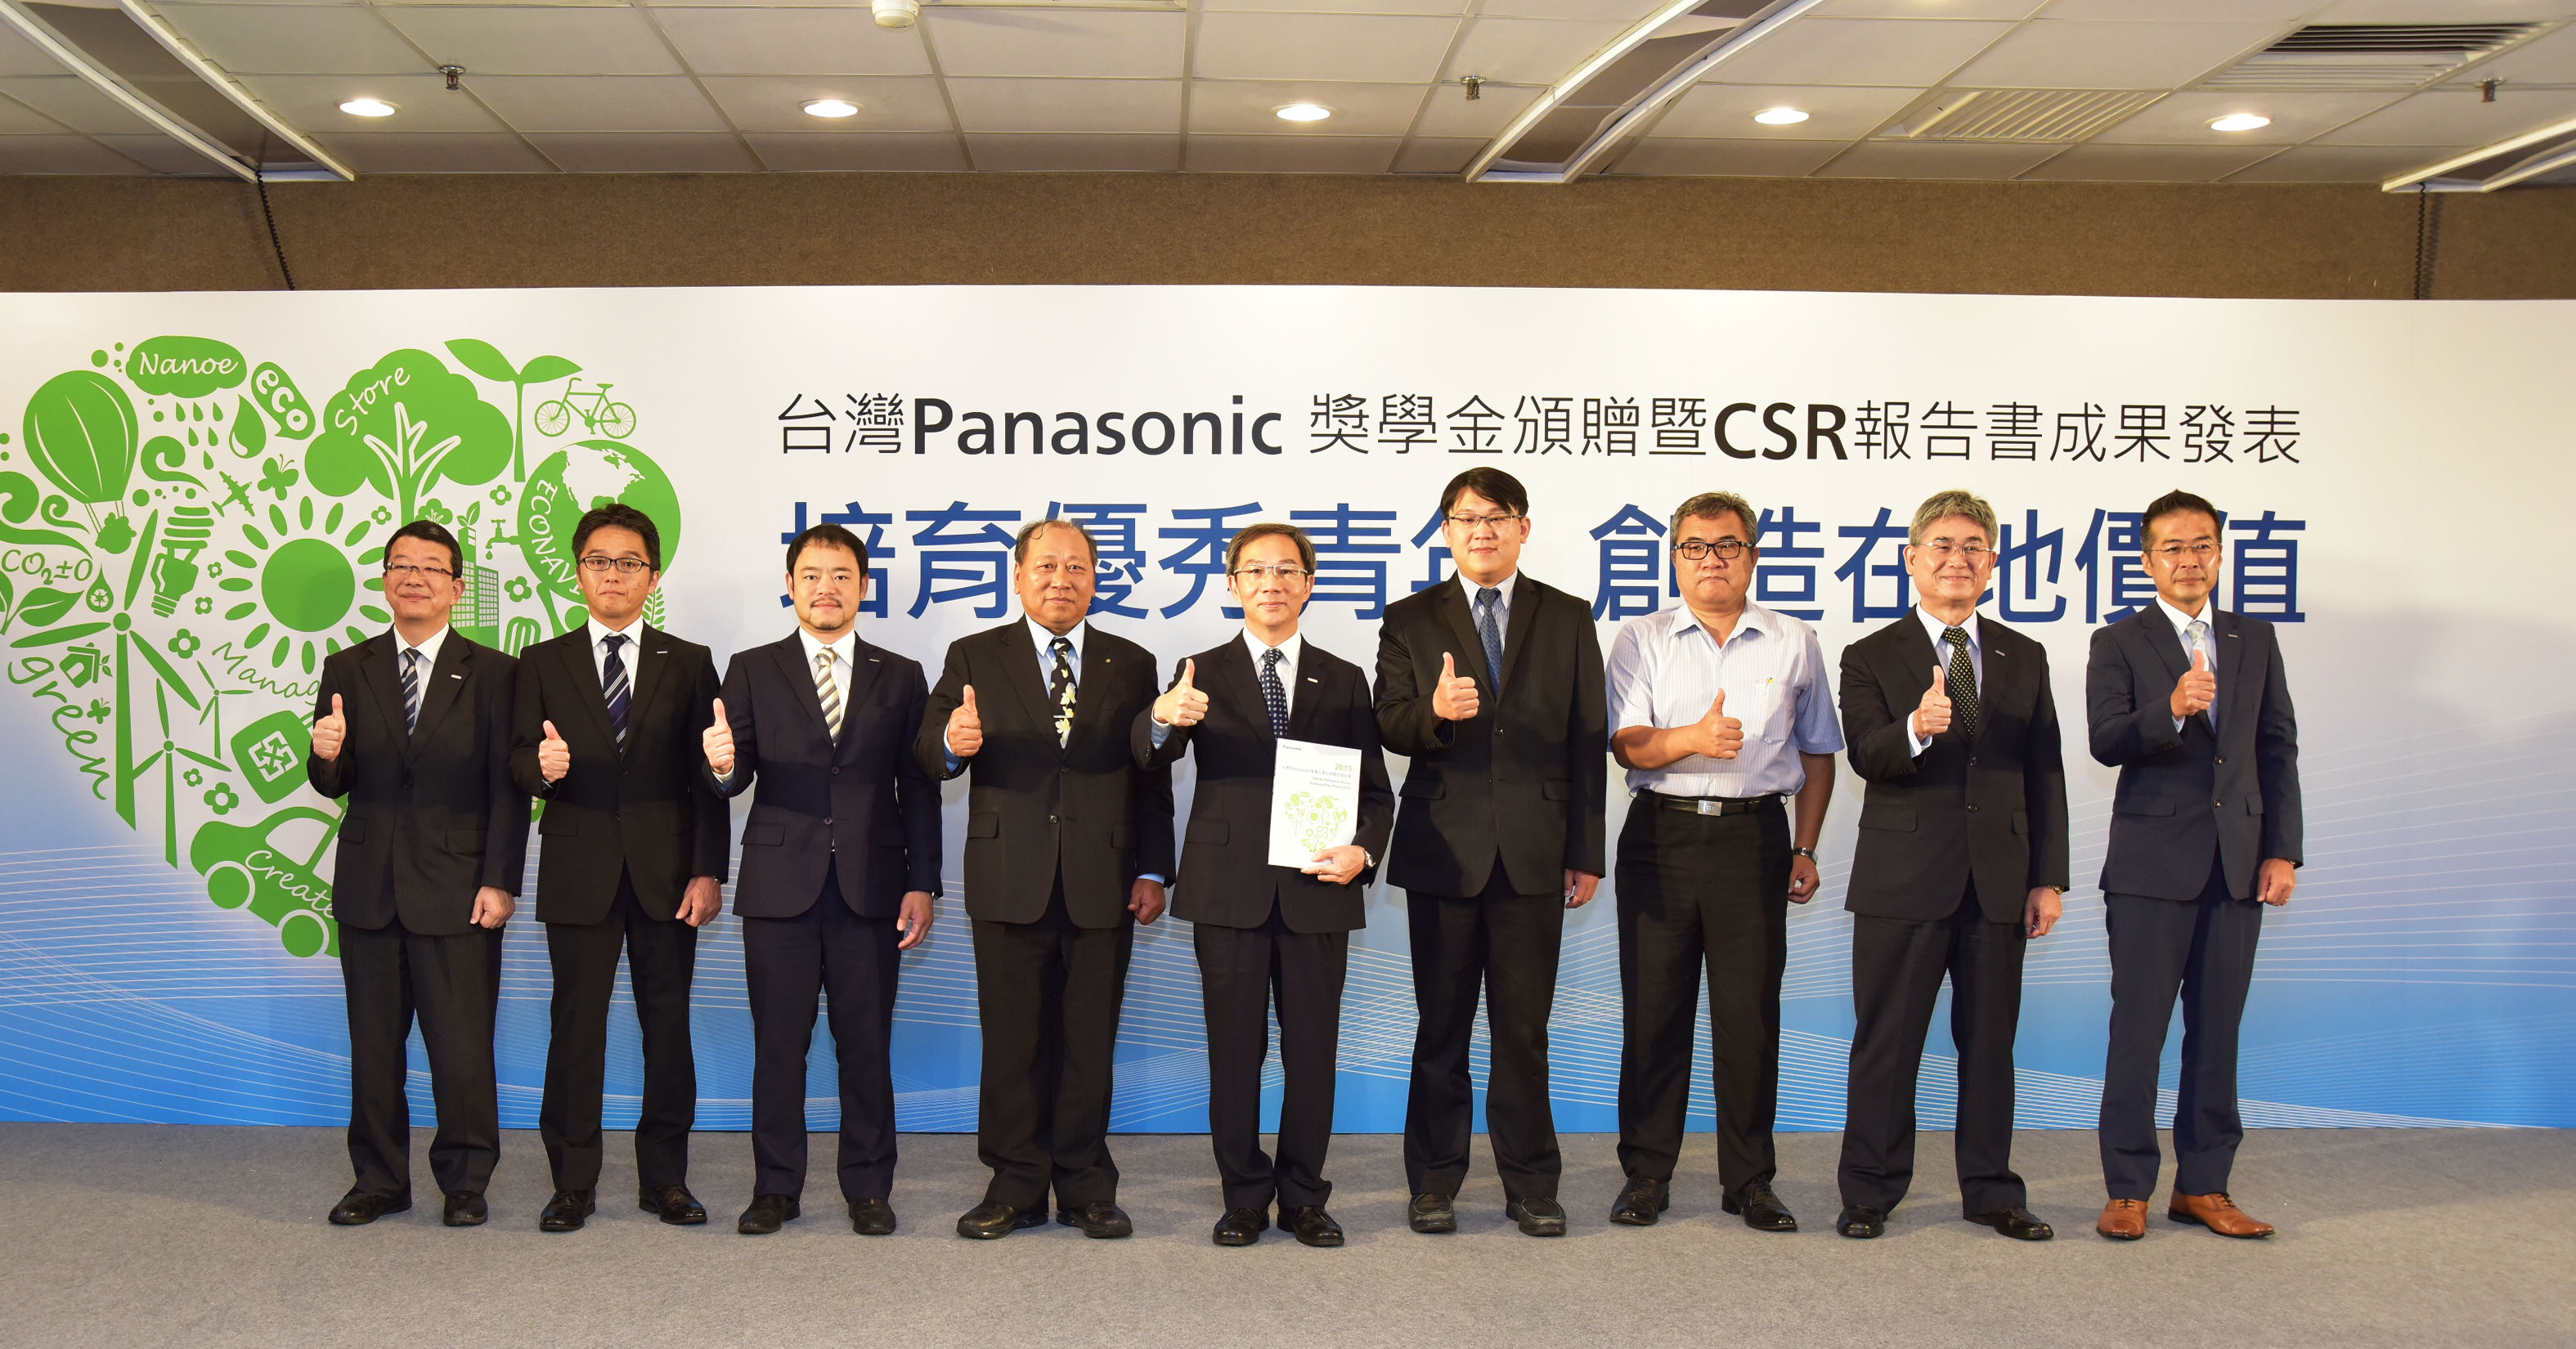 Photo of Release the first CSR, the first in the Japanese manufacturer of home appliance